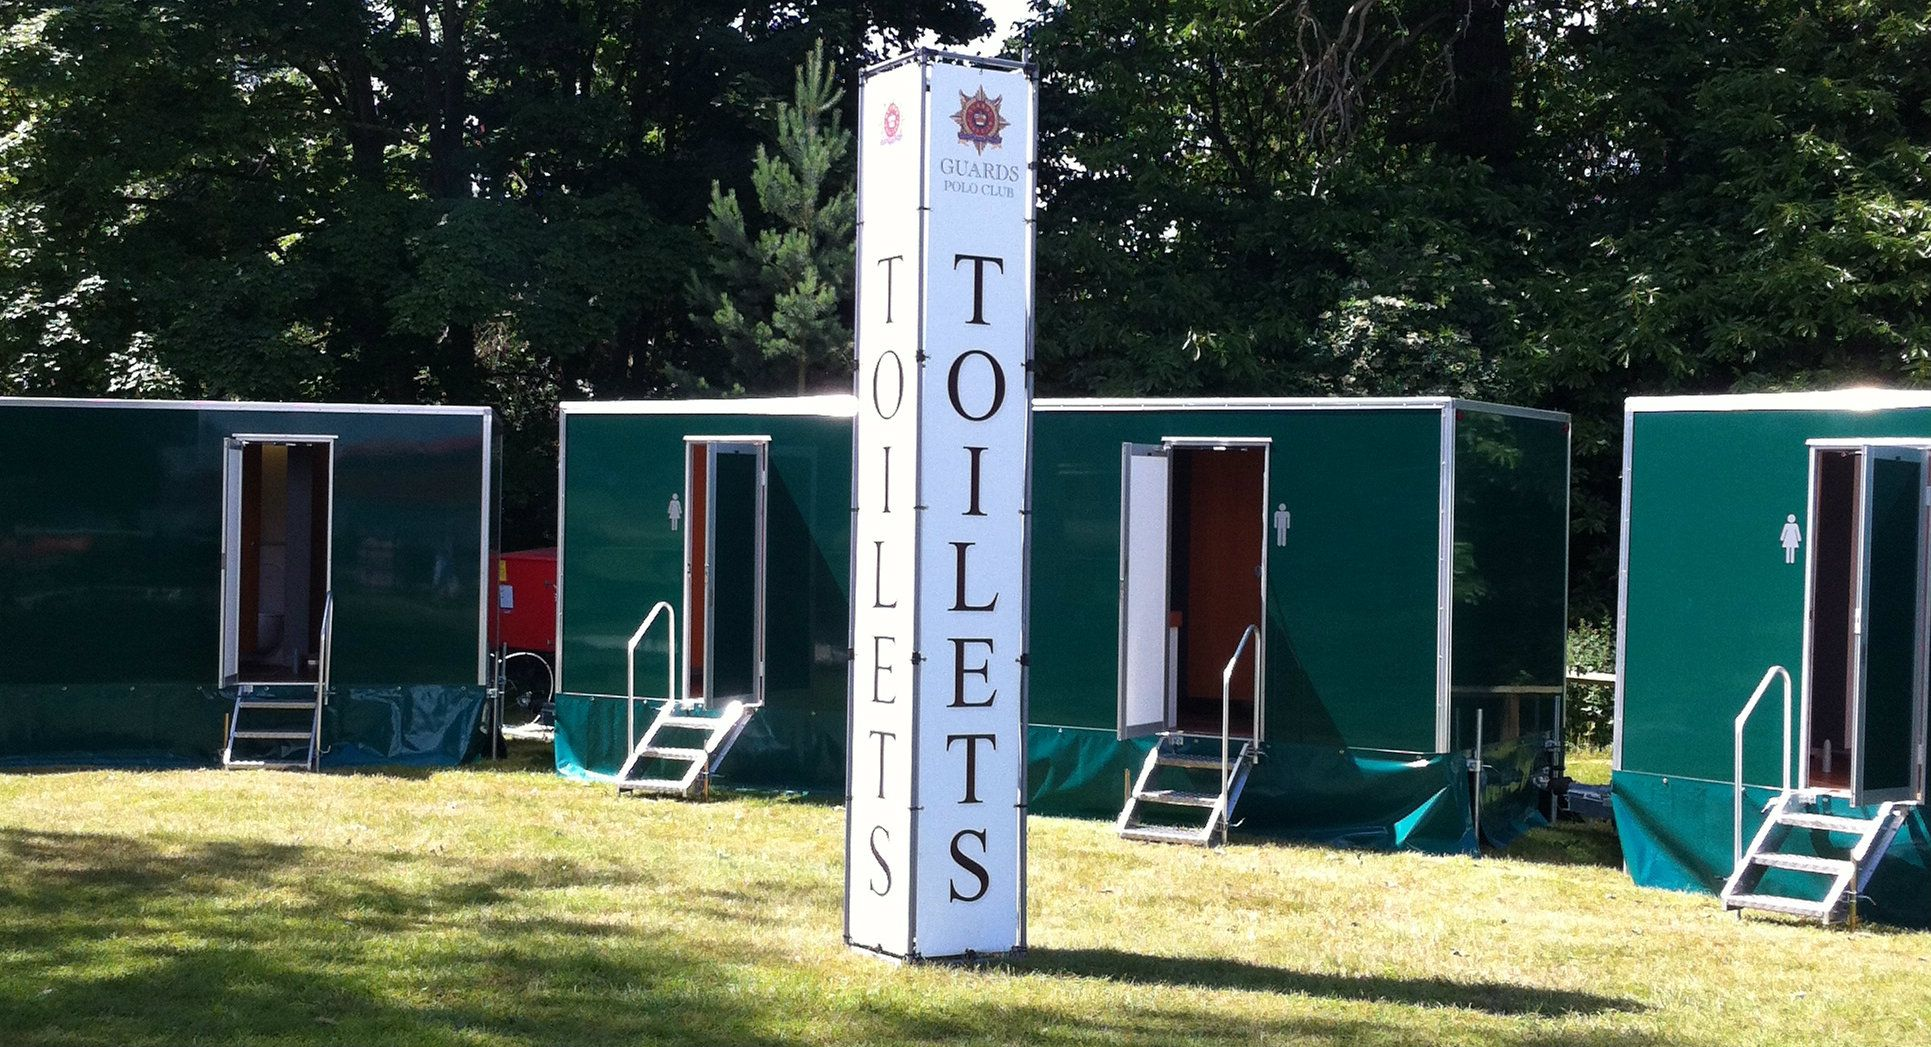 Luxury Portable Toilet Hire For Rent, Temporary, Private Toilets Loo Hire